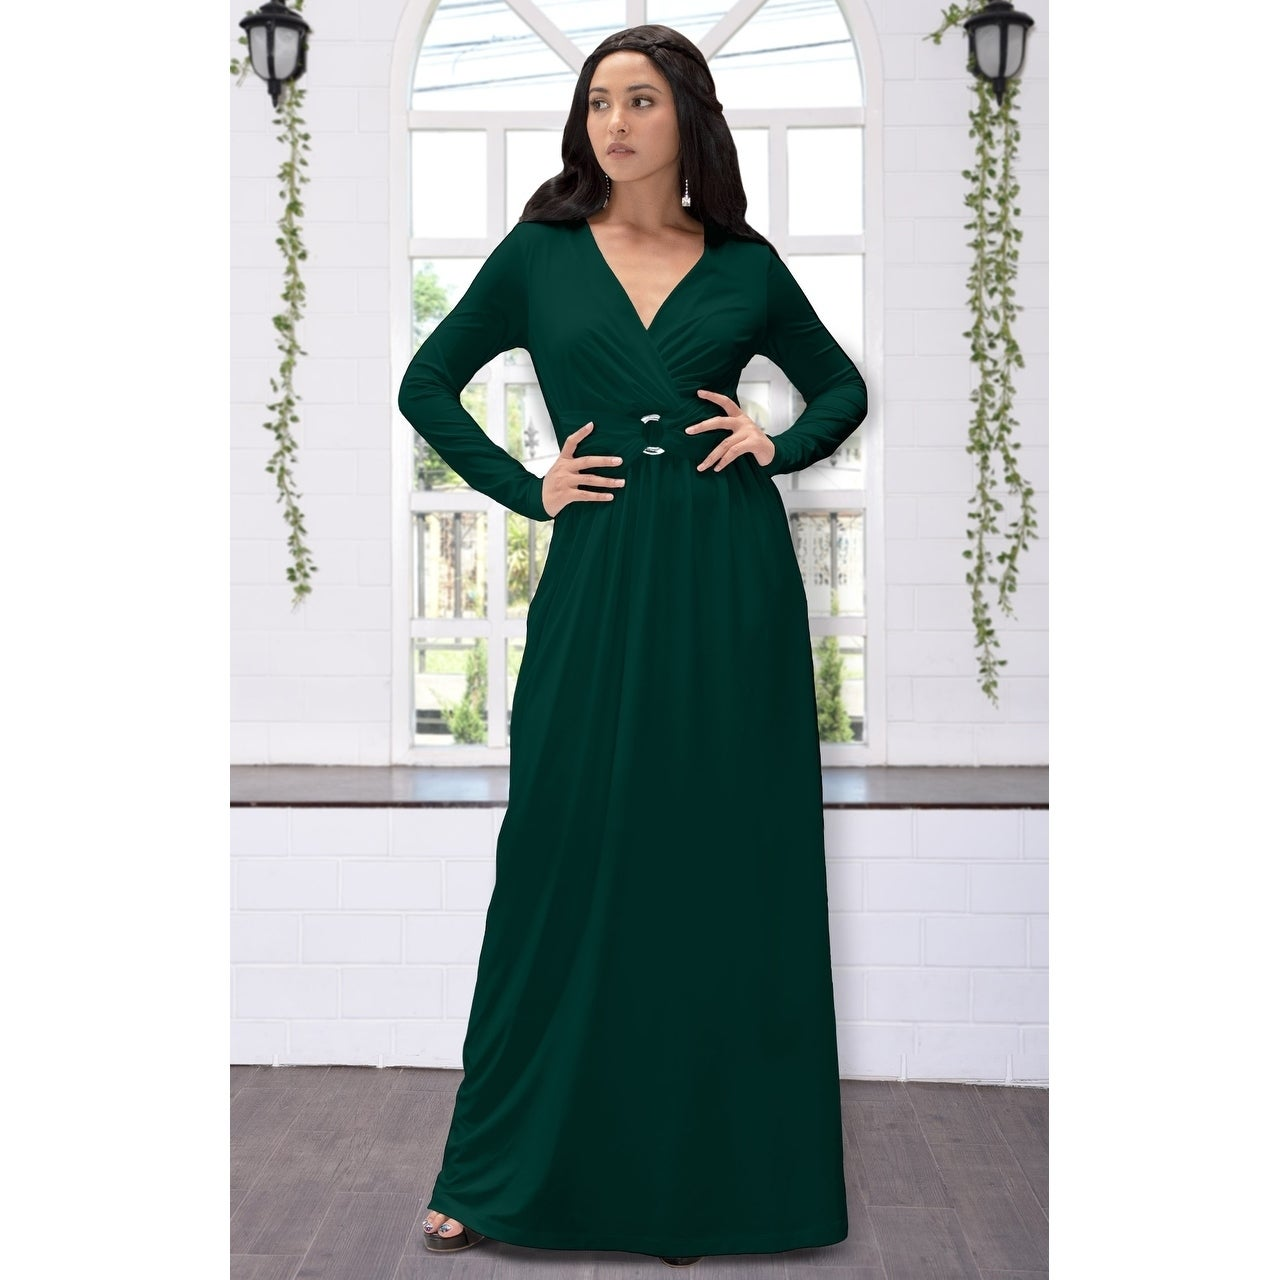 c4d475286e466 Shop KOH KOH Womens Belted Flowy Long Semi Formal Sleeve Stylish Maxi Dress  - Free Shipping Today - Overstock - 23107026